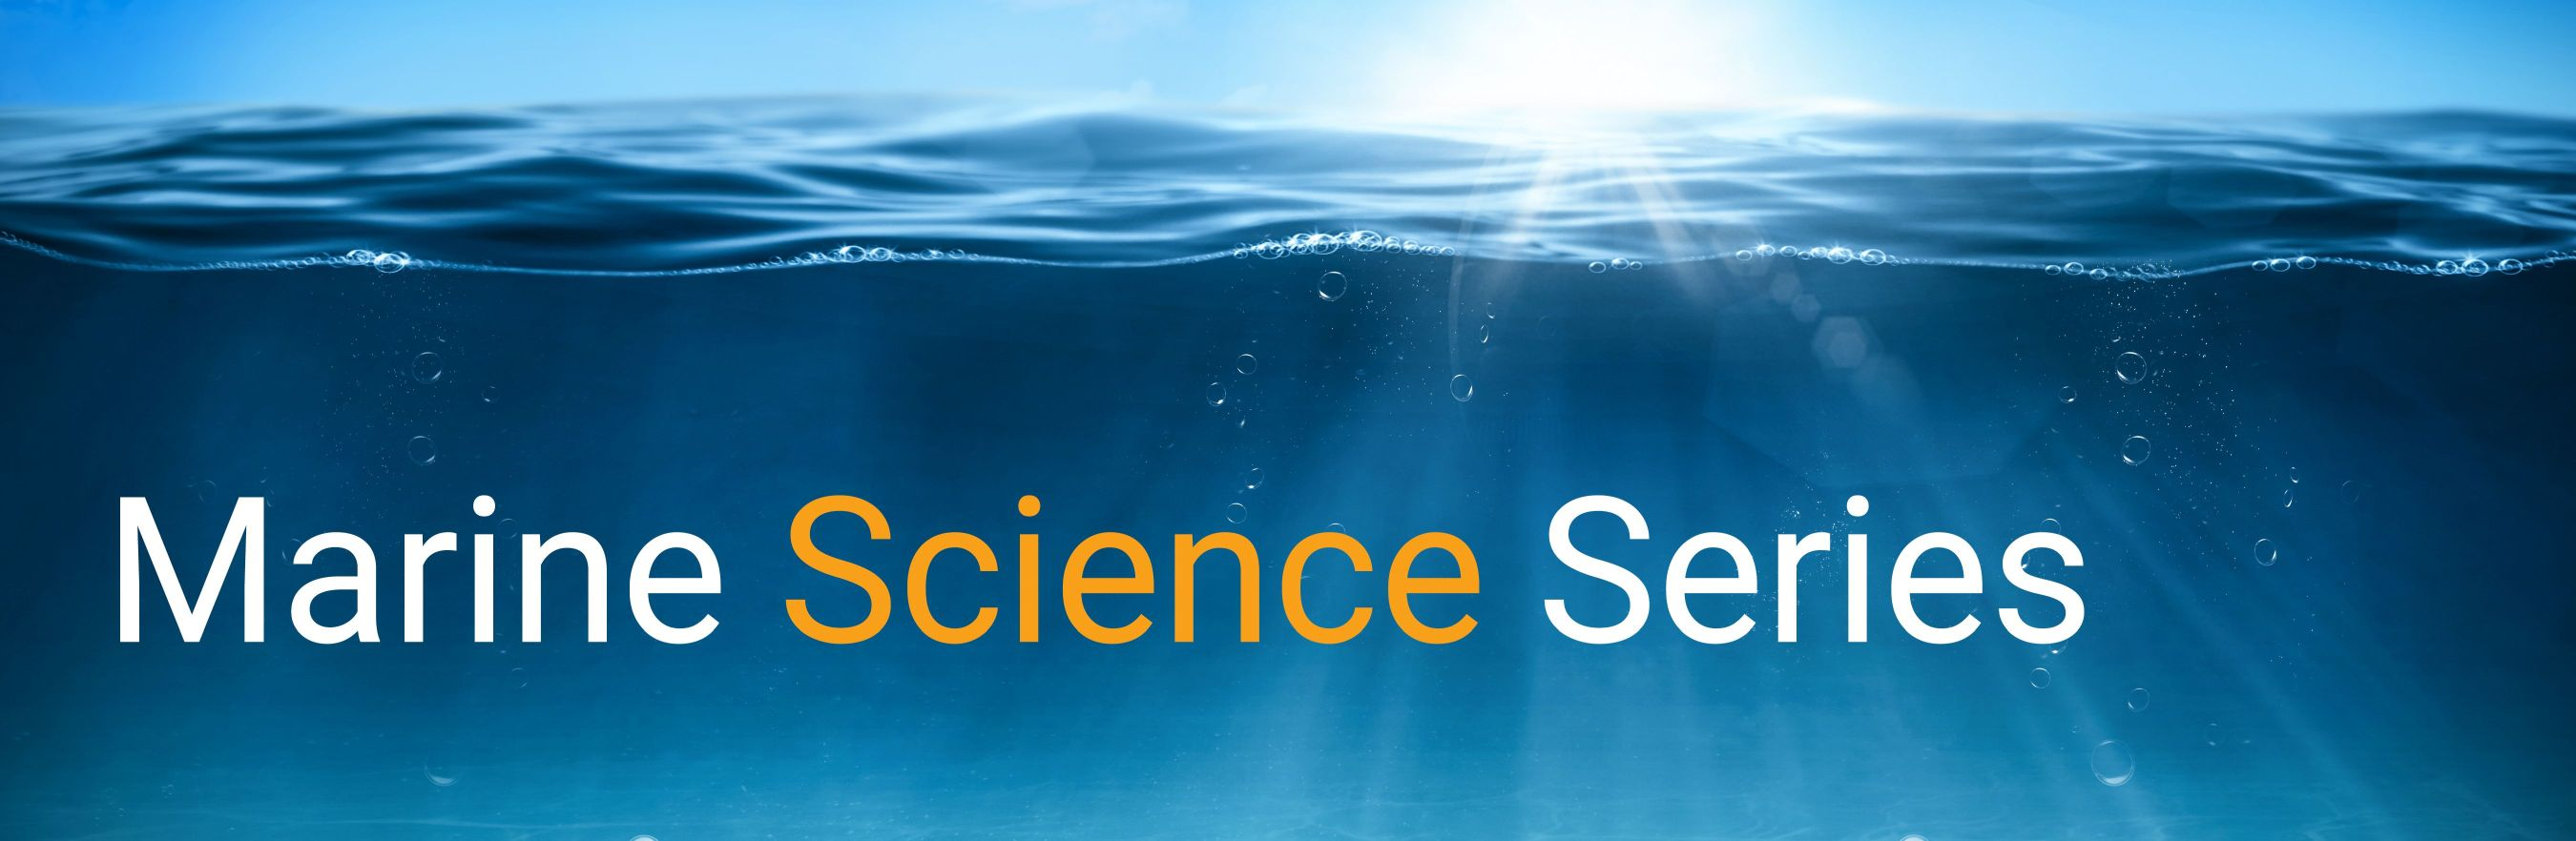 Marine Science Series